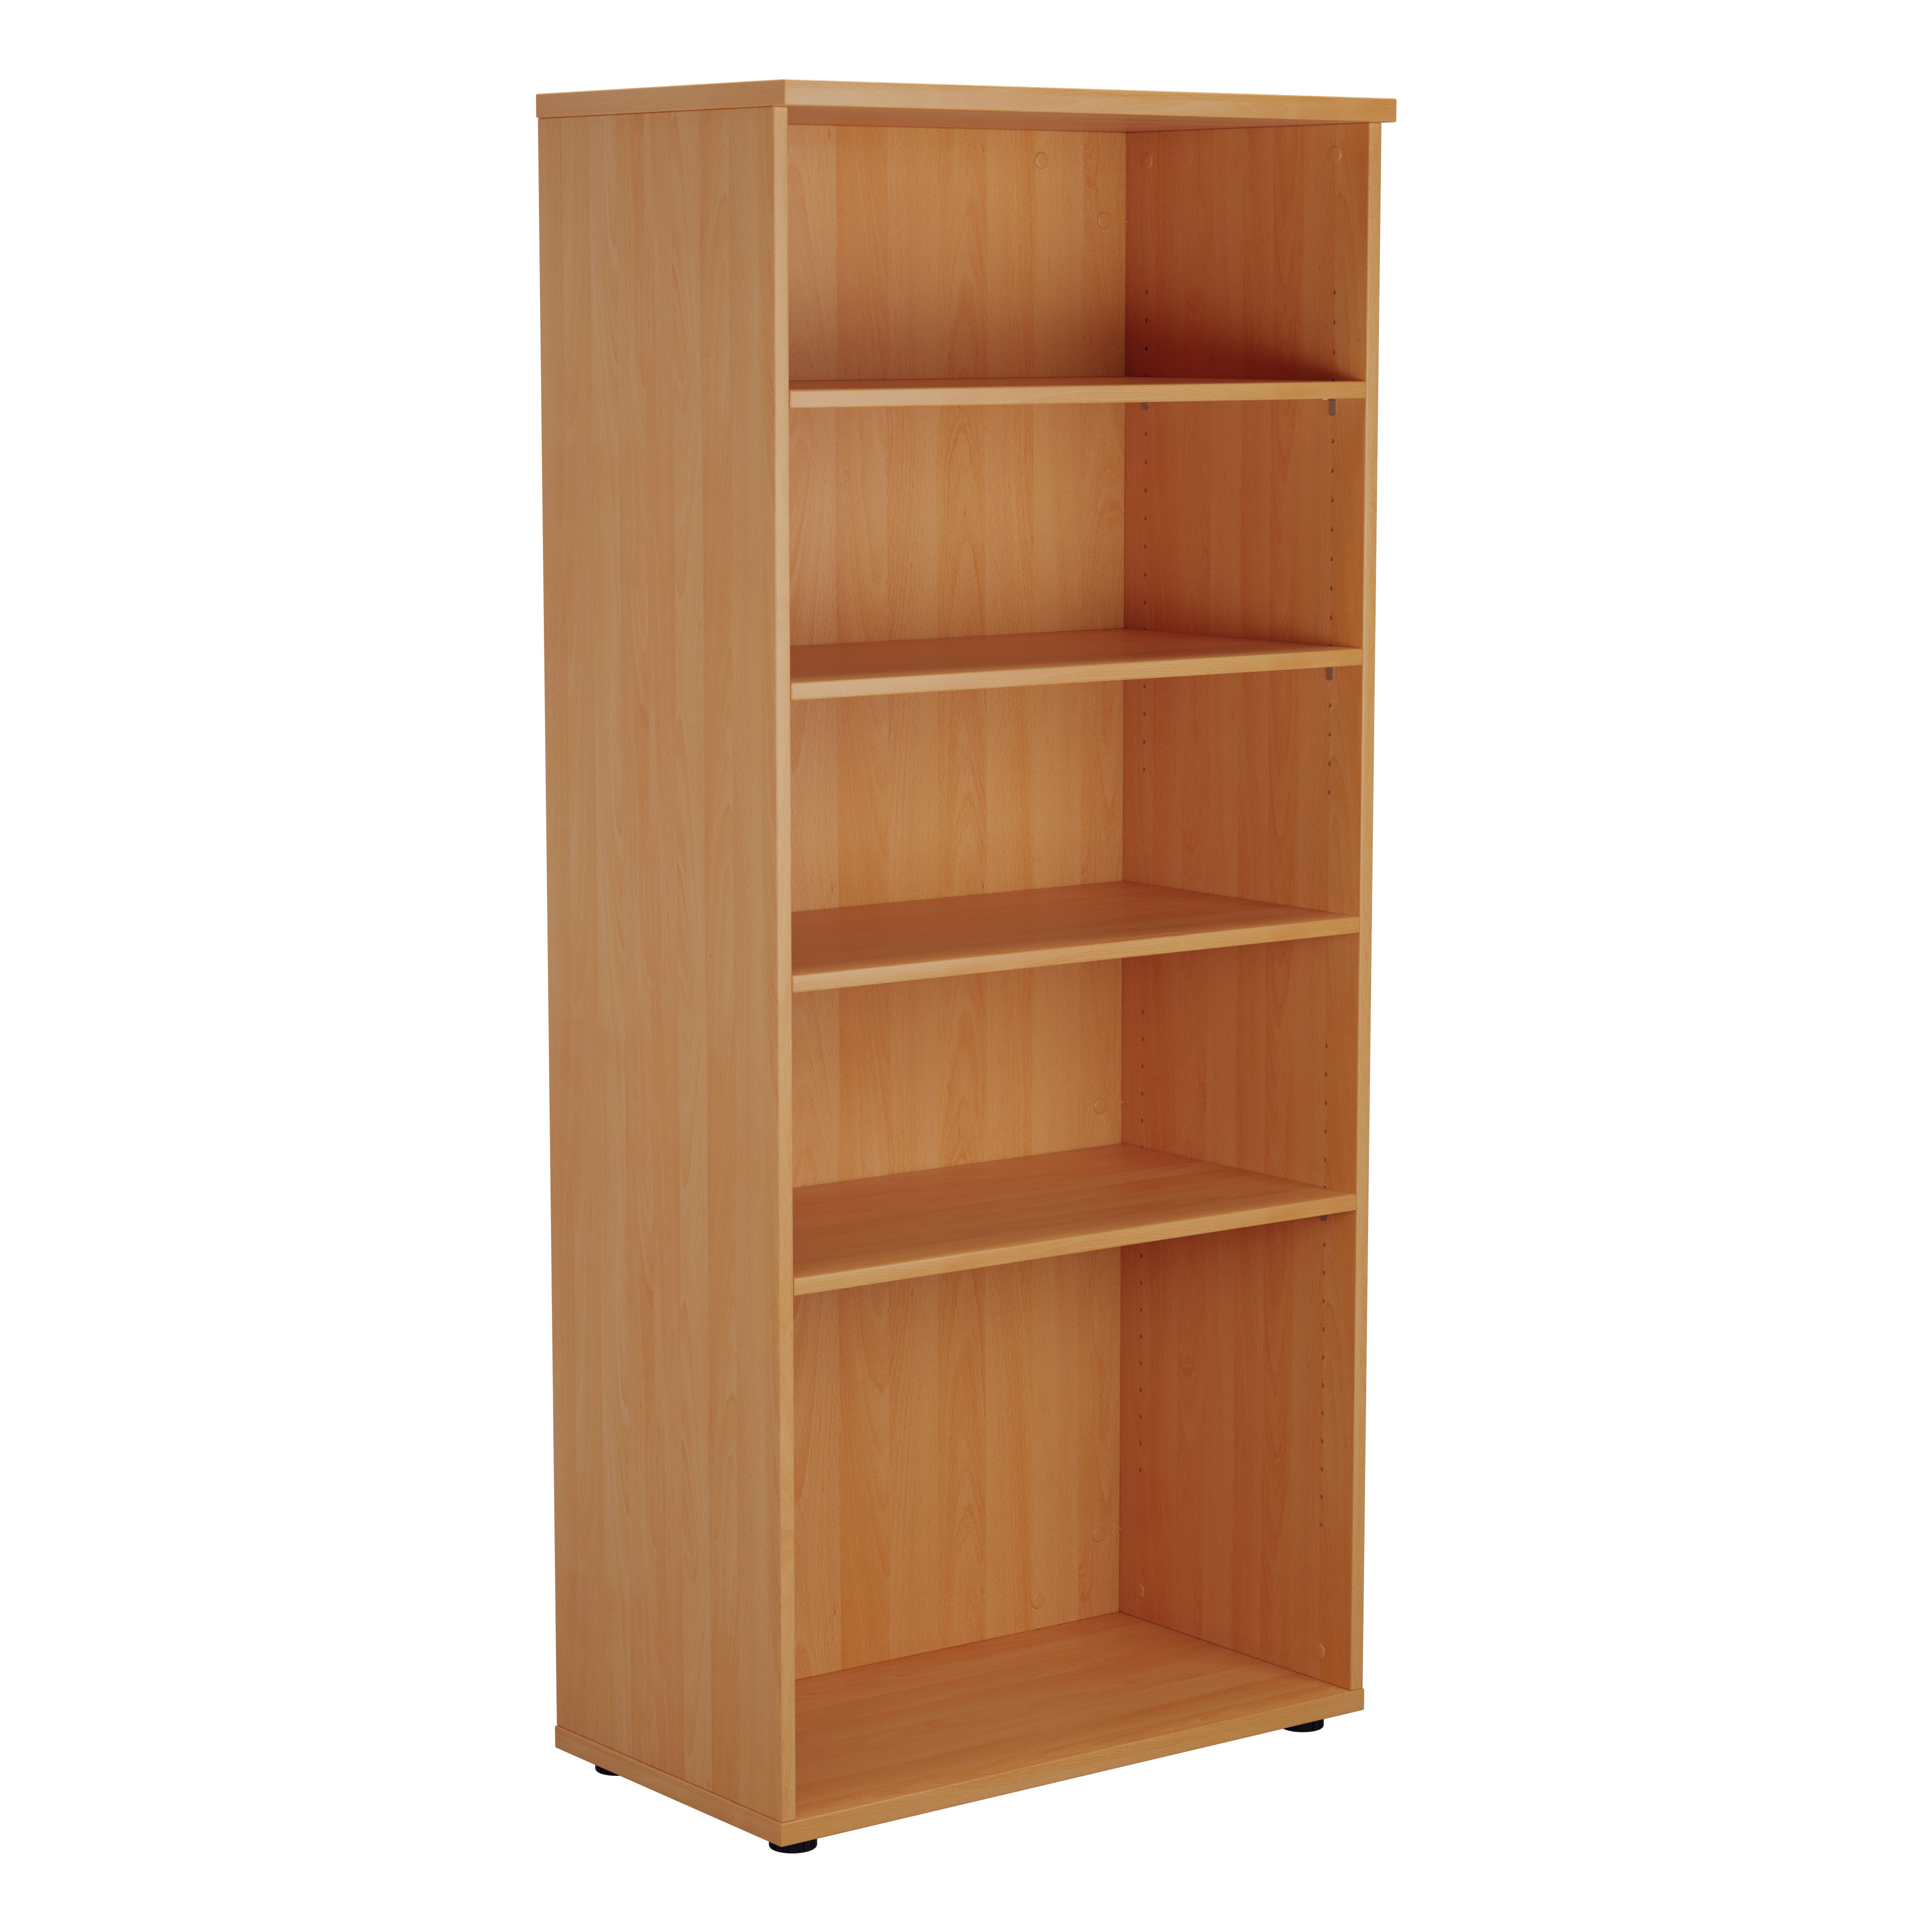 Essentials - 1800mm High Bookcase